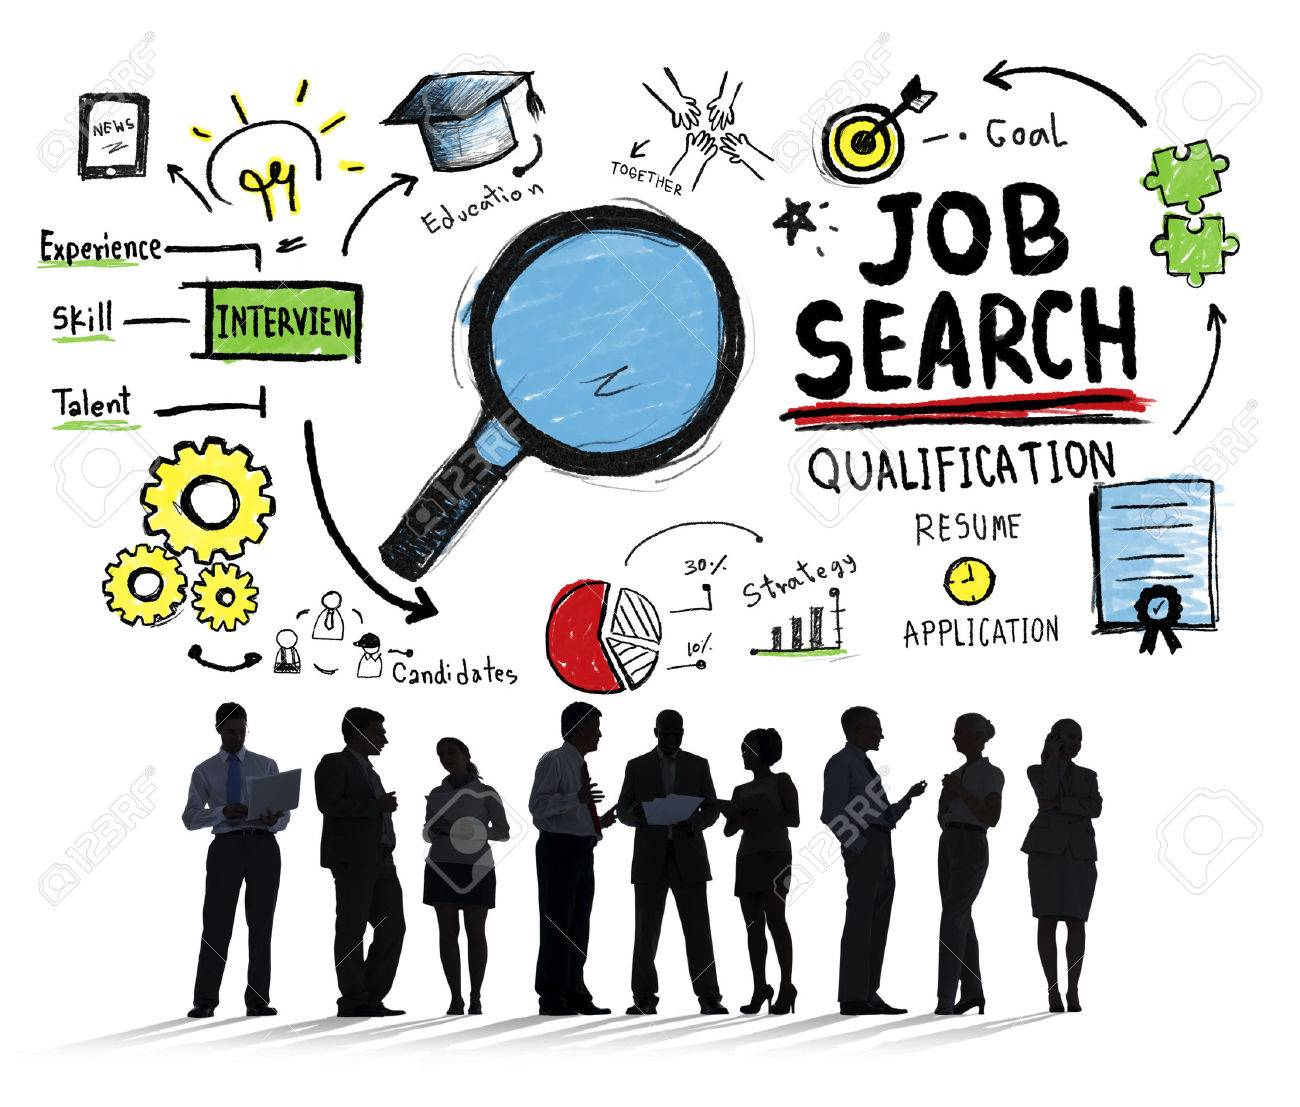 Business People Discussion Aspiration Job Search Concept Stock Photo ...